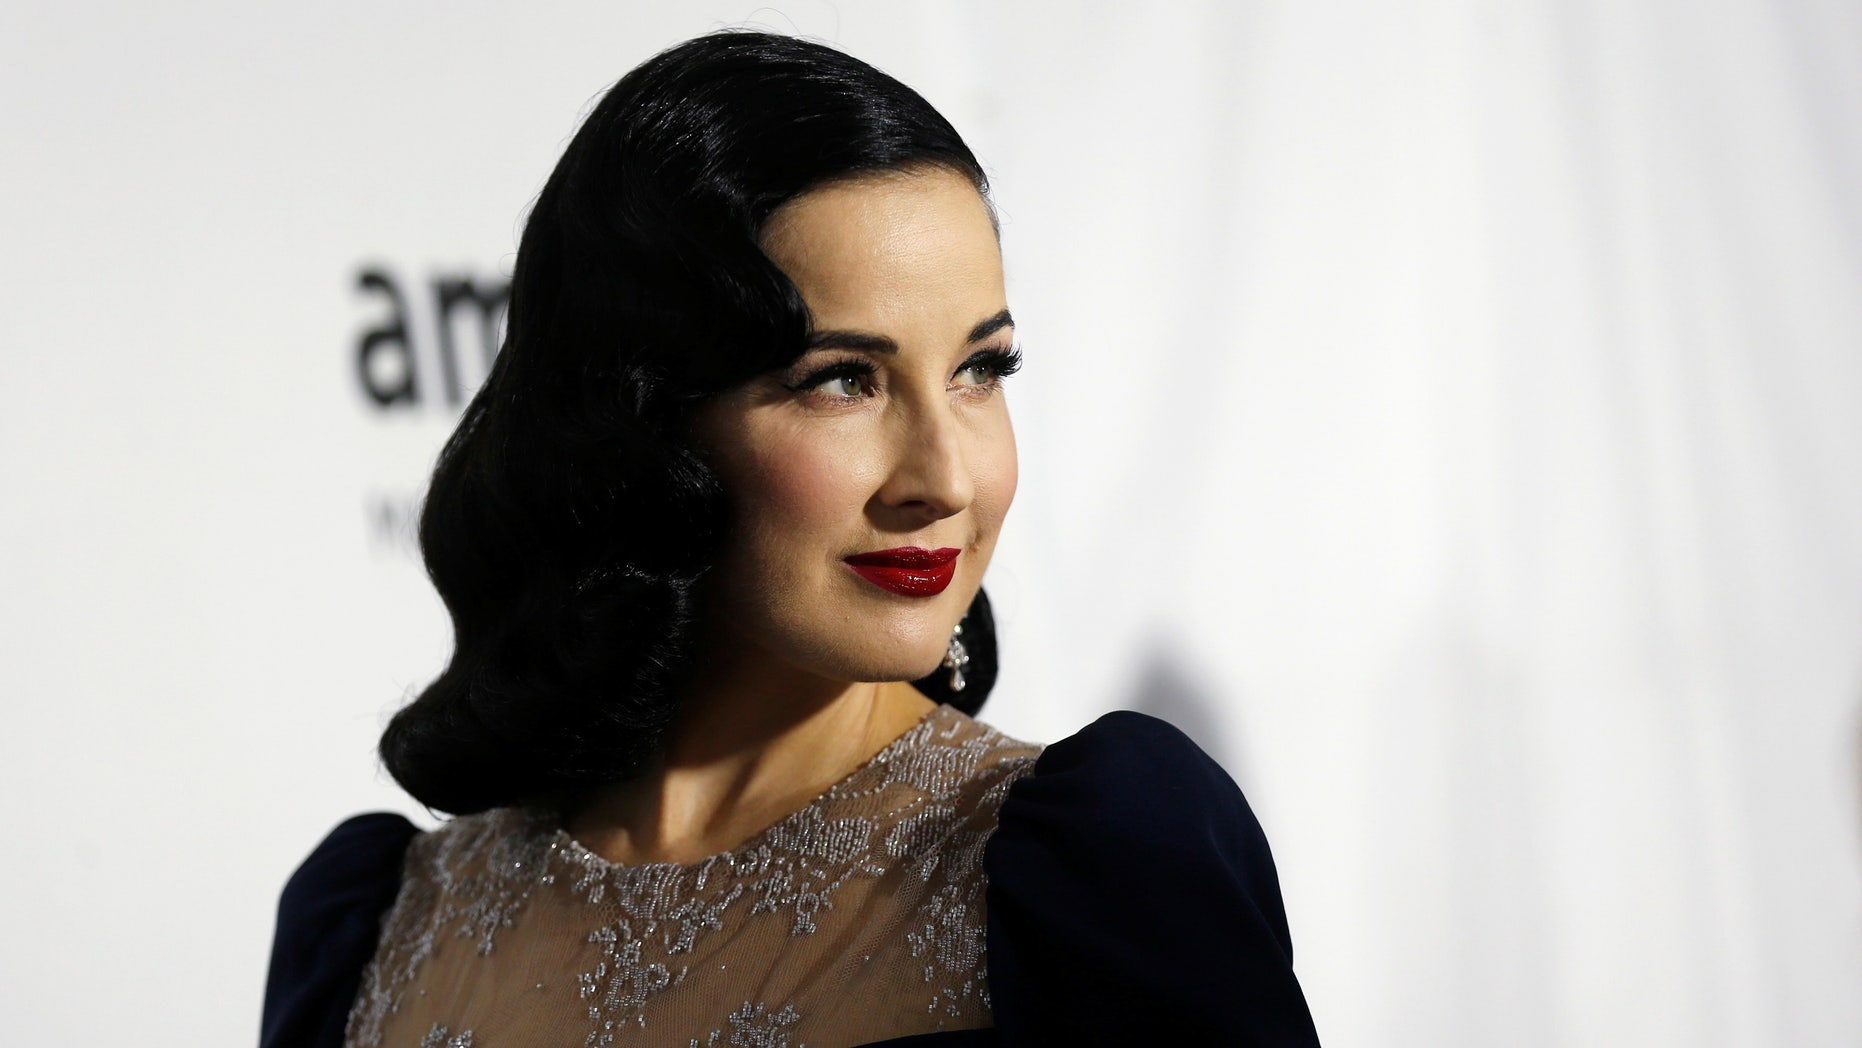 Performer Dita Von Teese poses at the 2016 amfAR Inspiration Gala in Los Angeles, California U.S., October 27, 2016. REUTERS/Mario Anzuoni - RTX2QSHY